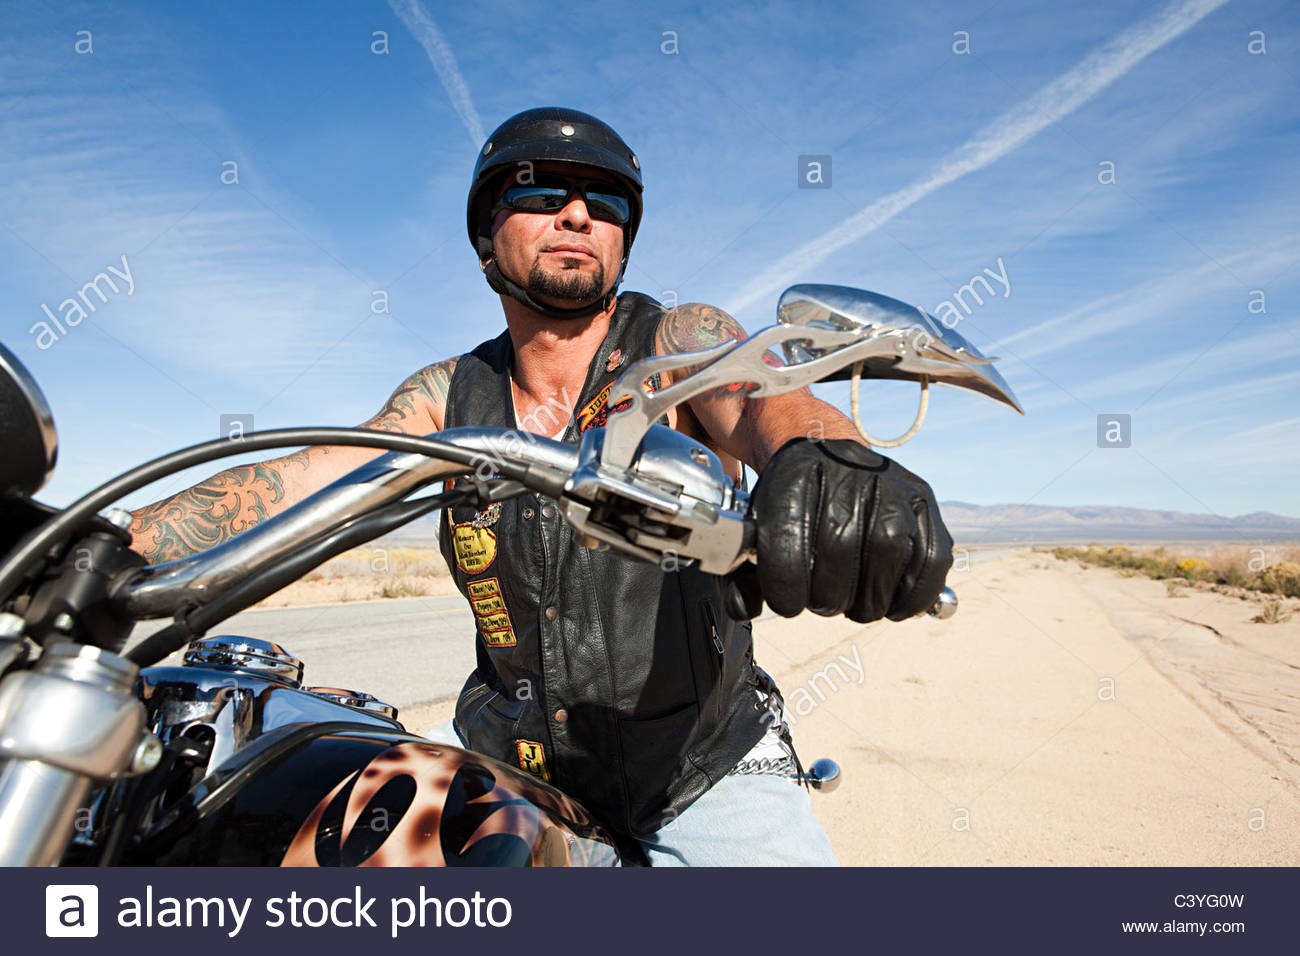 Portrait of mature man on motorcycle Photo Stock